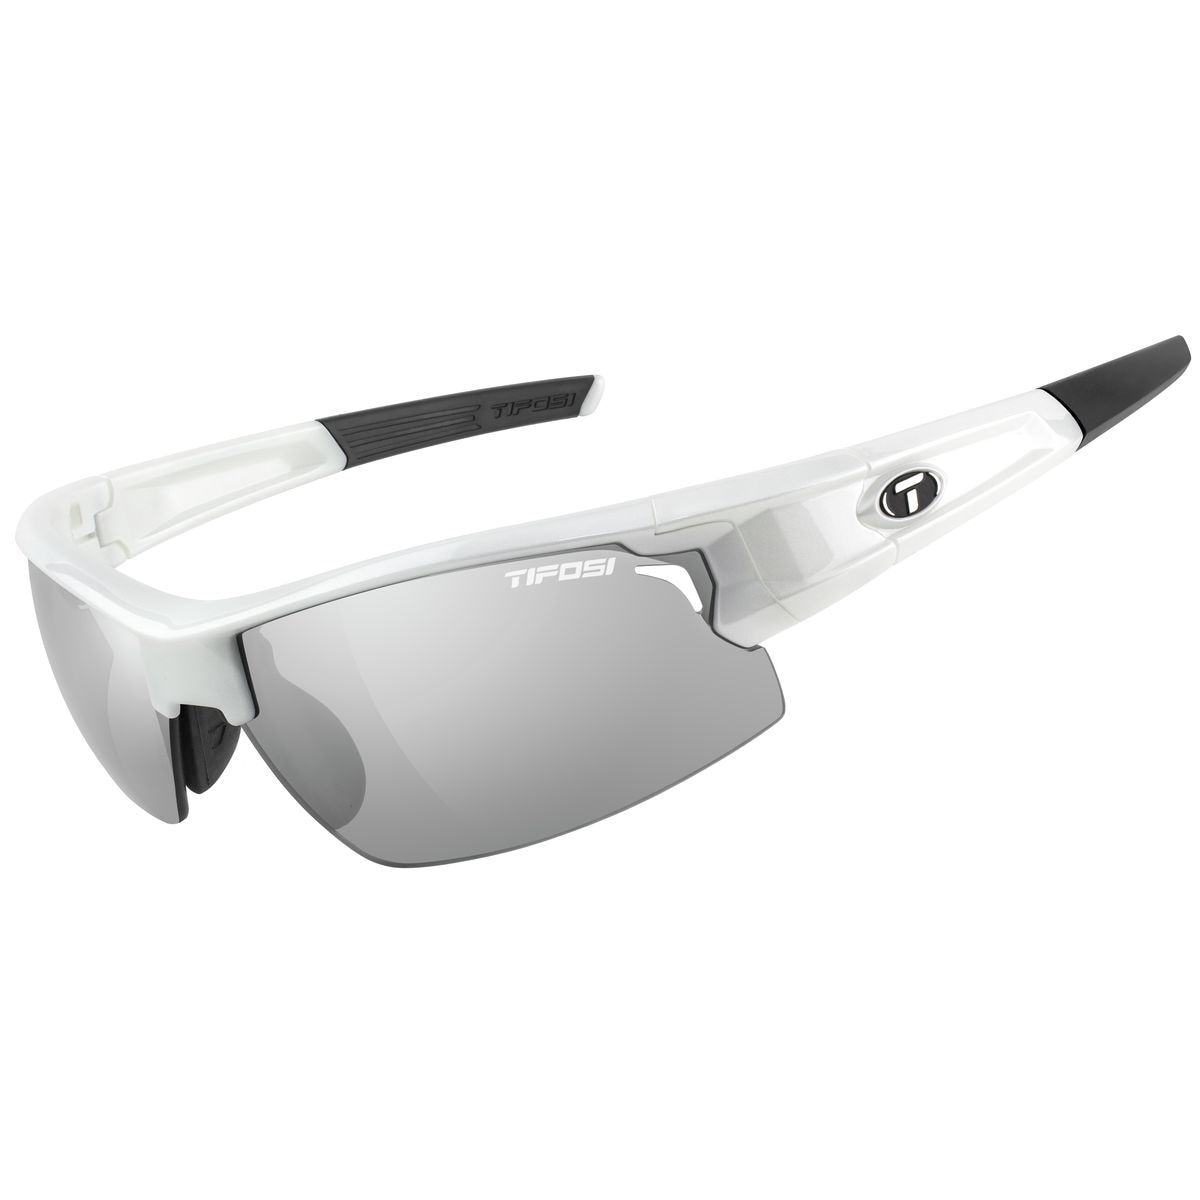 Tifosi Optics Escalate H.S. Sunglasses Men's